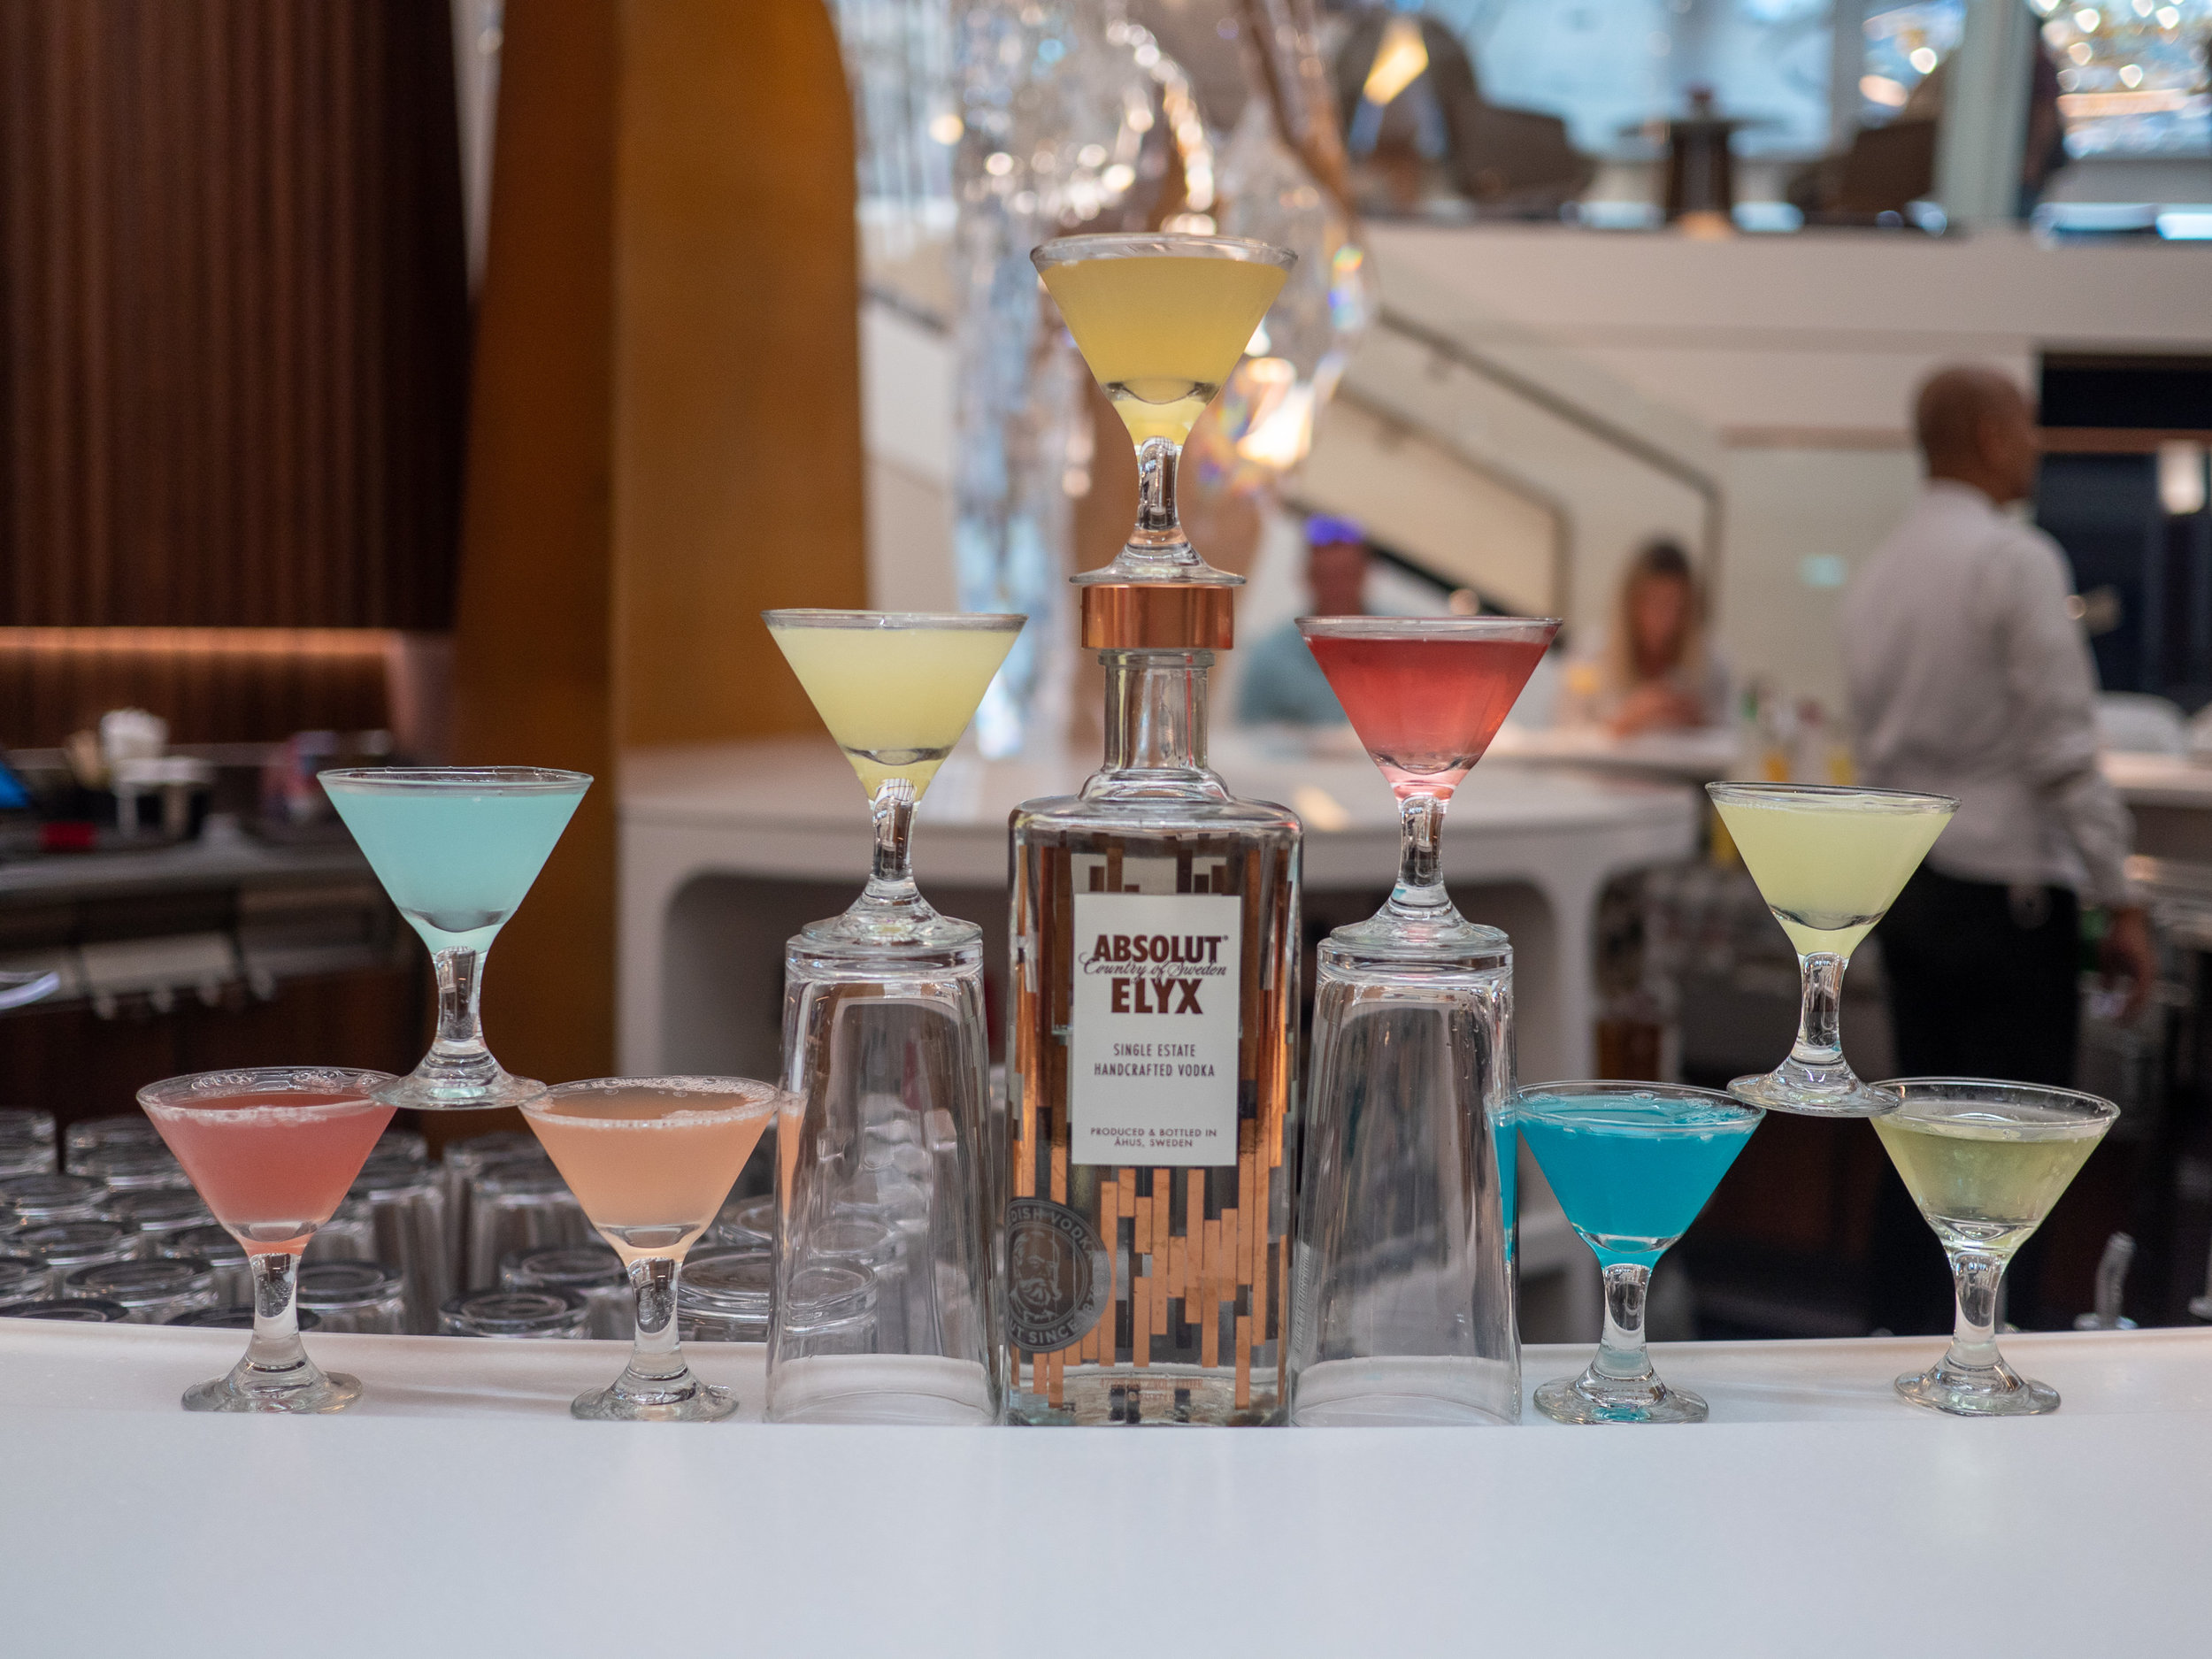 A tasty flight of Absolut Elyx cocktails is just…one of many artisanal mixology surprises you can expect while on board!